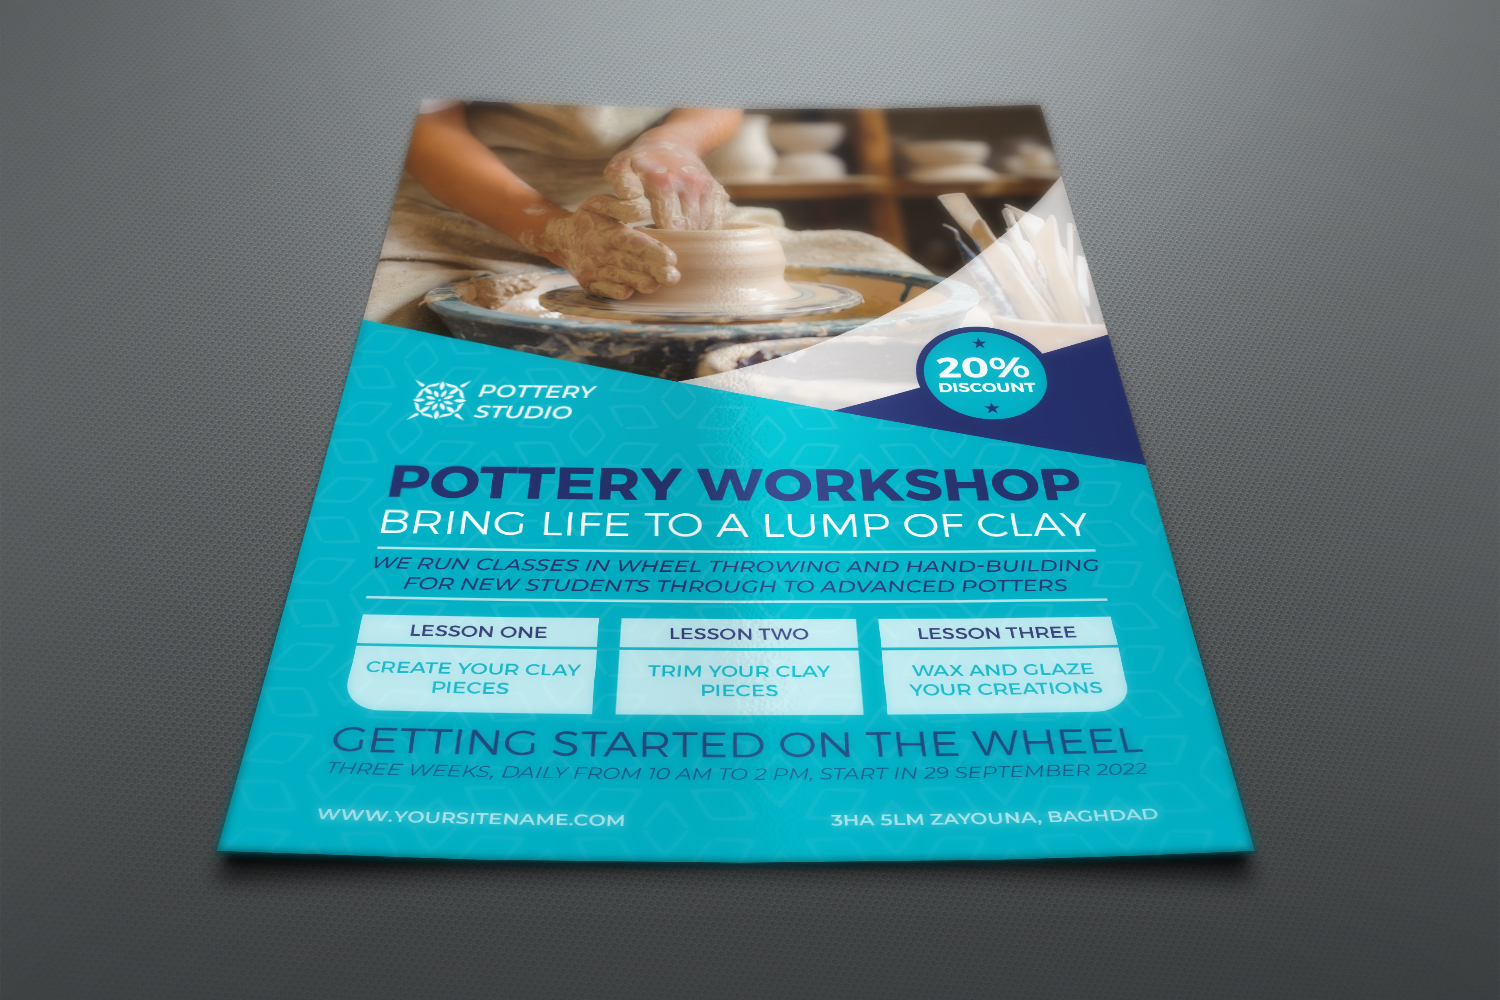 Pottery Workshop Flyer Template example image 2